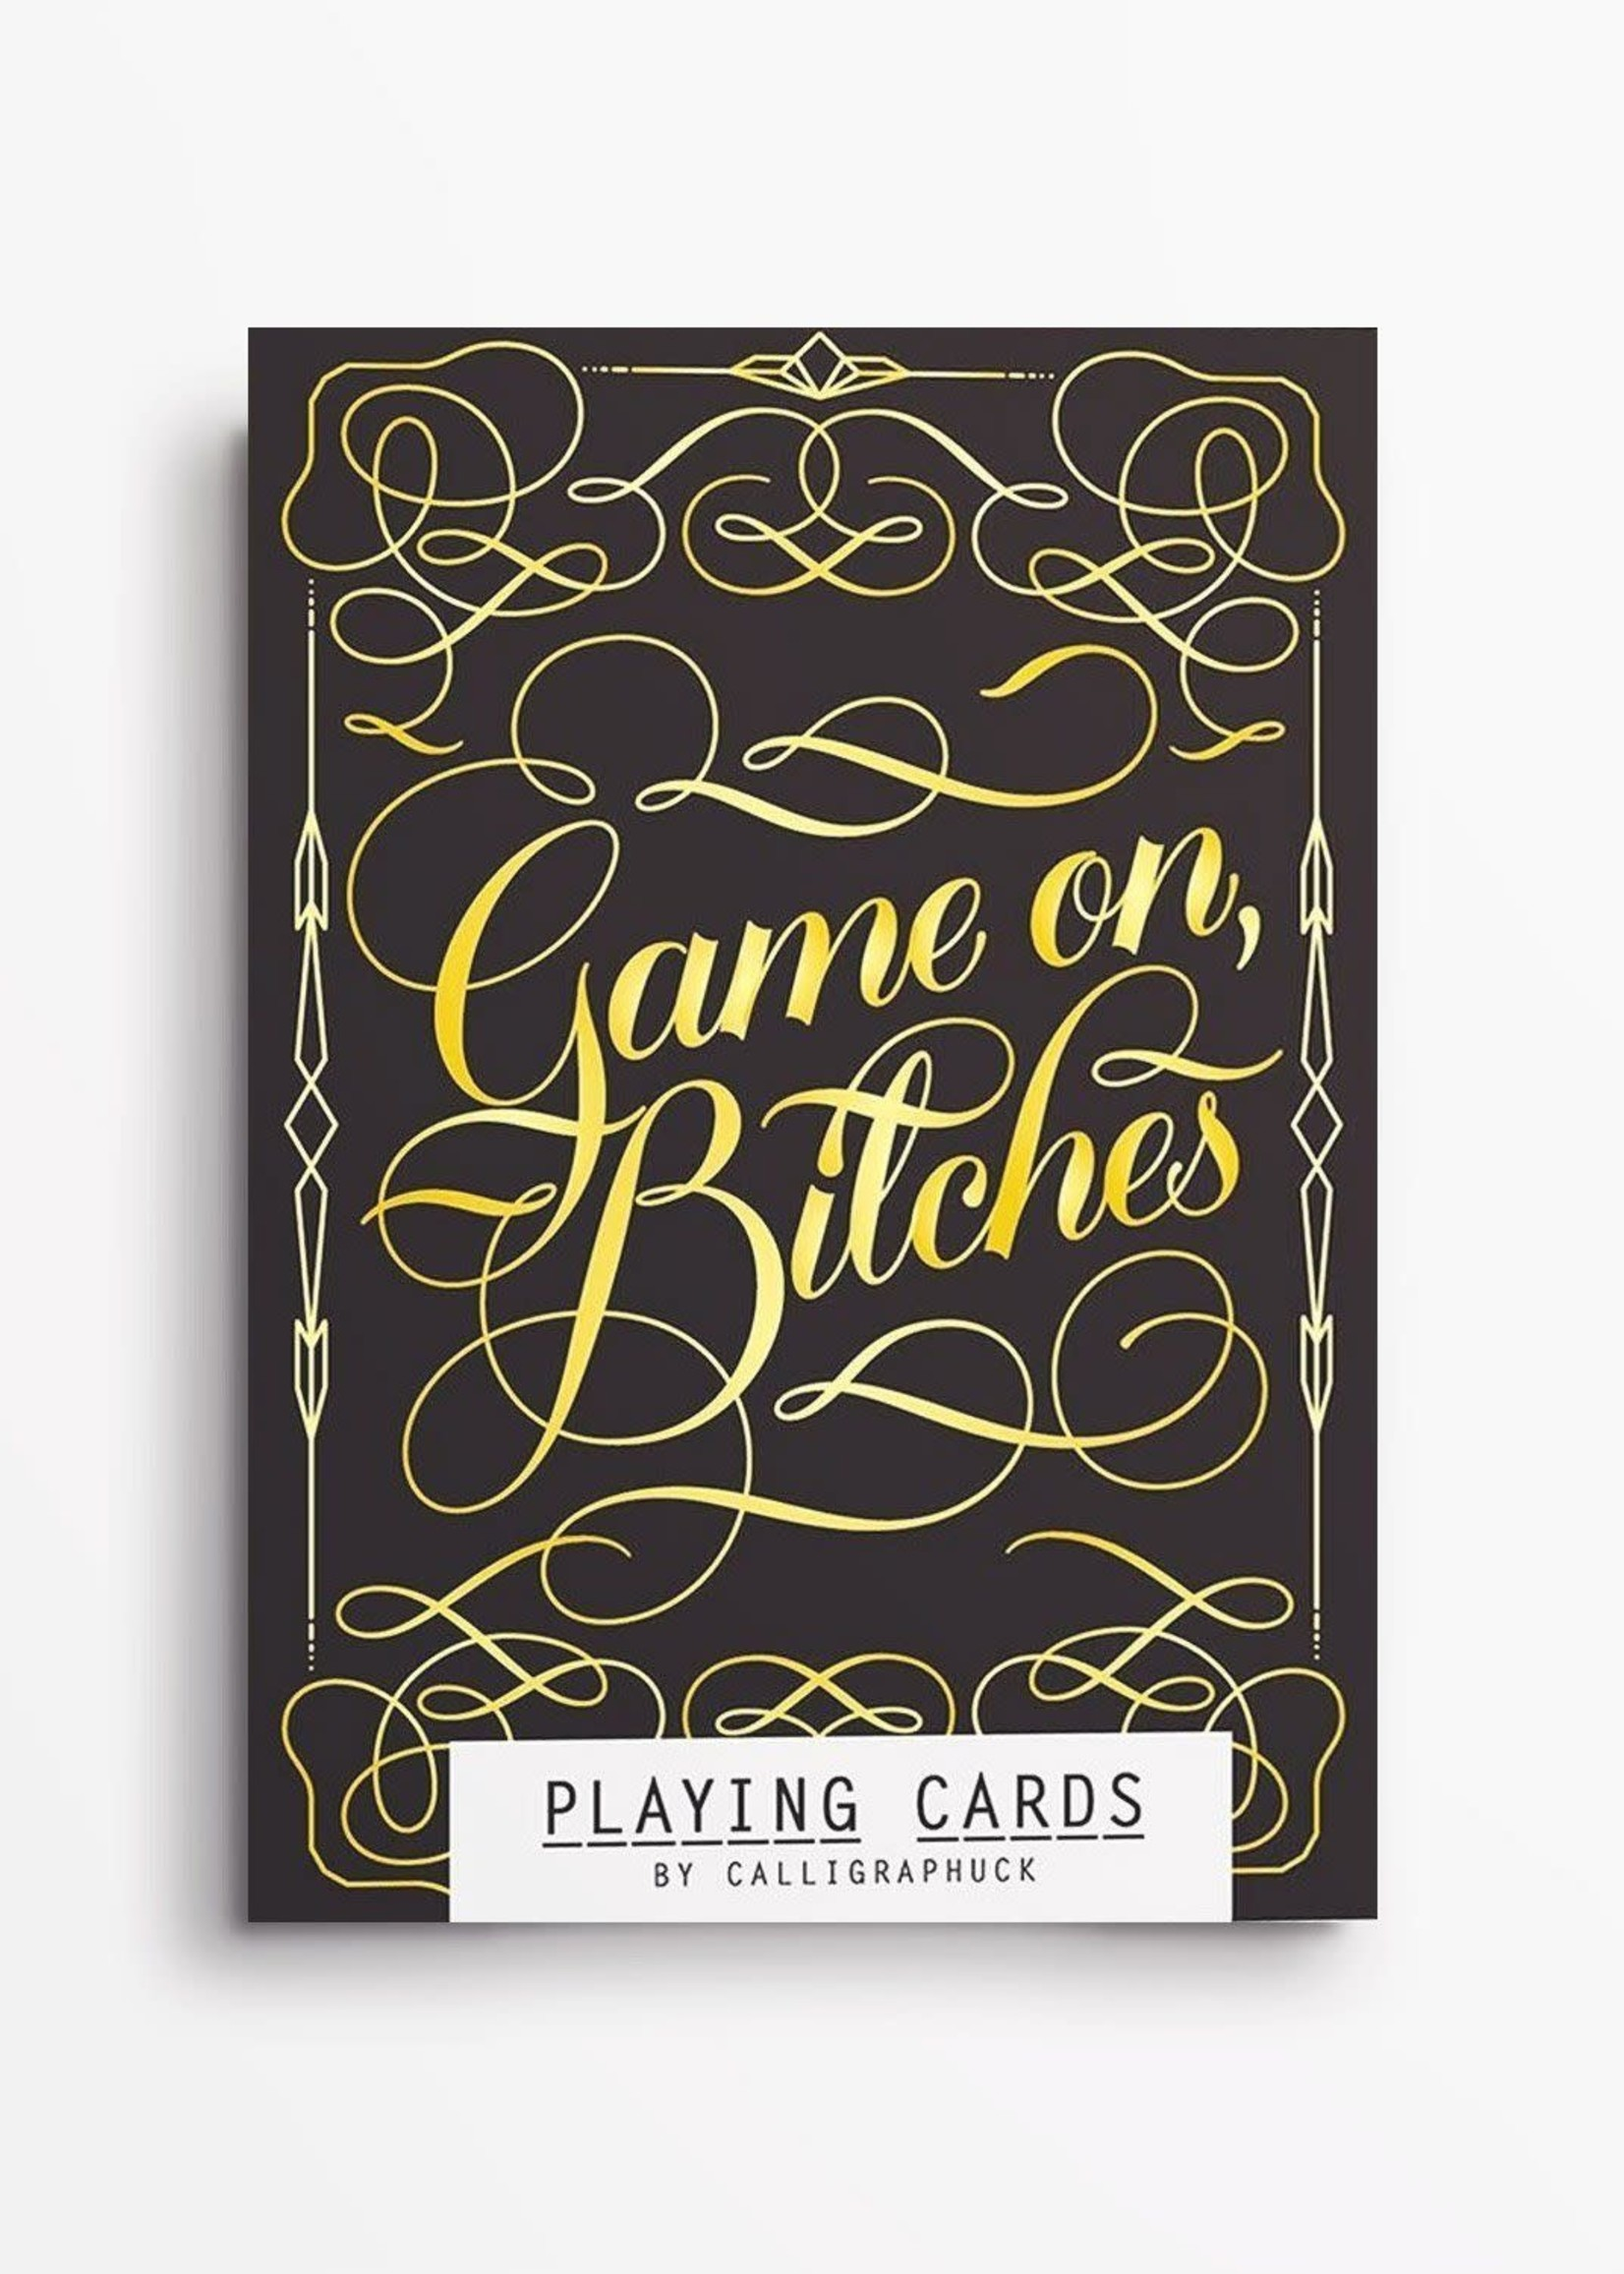 Chronicle Books GAME ON BITCHES CARDS